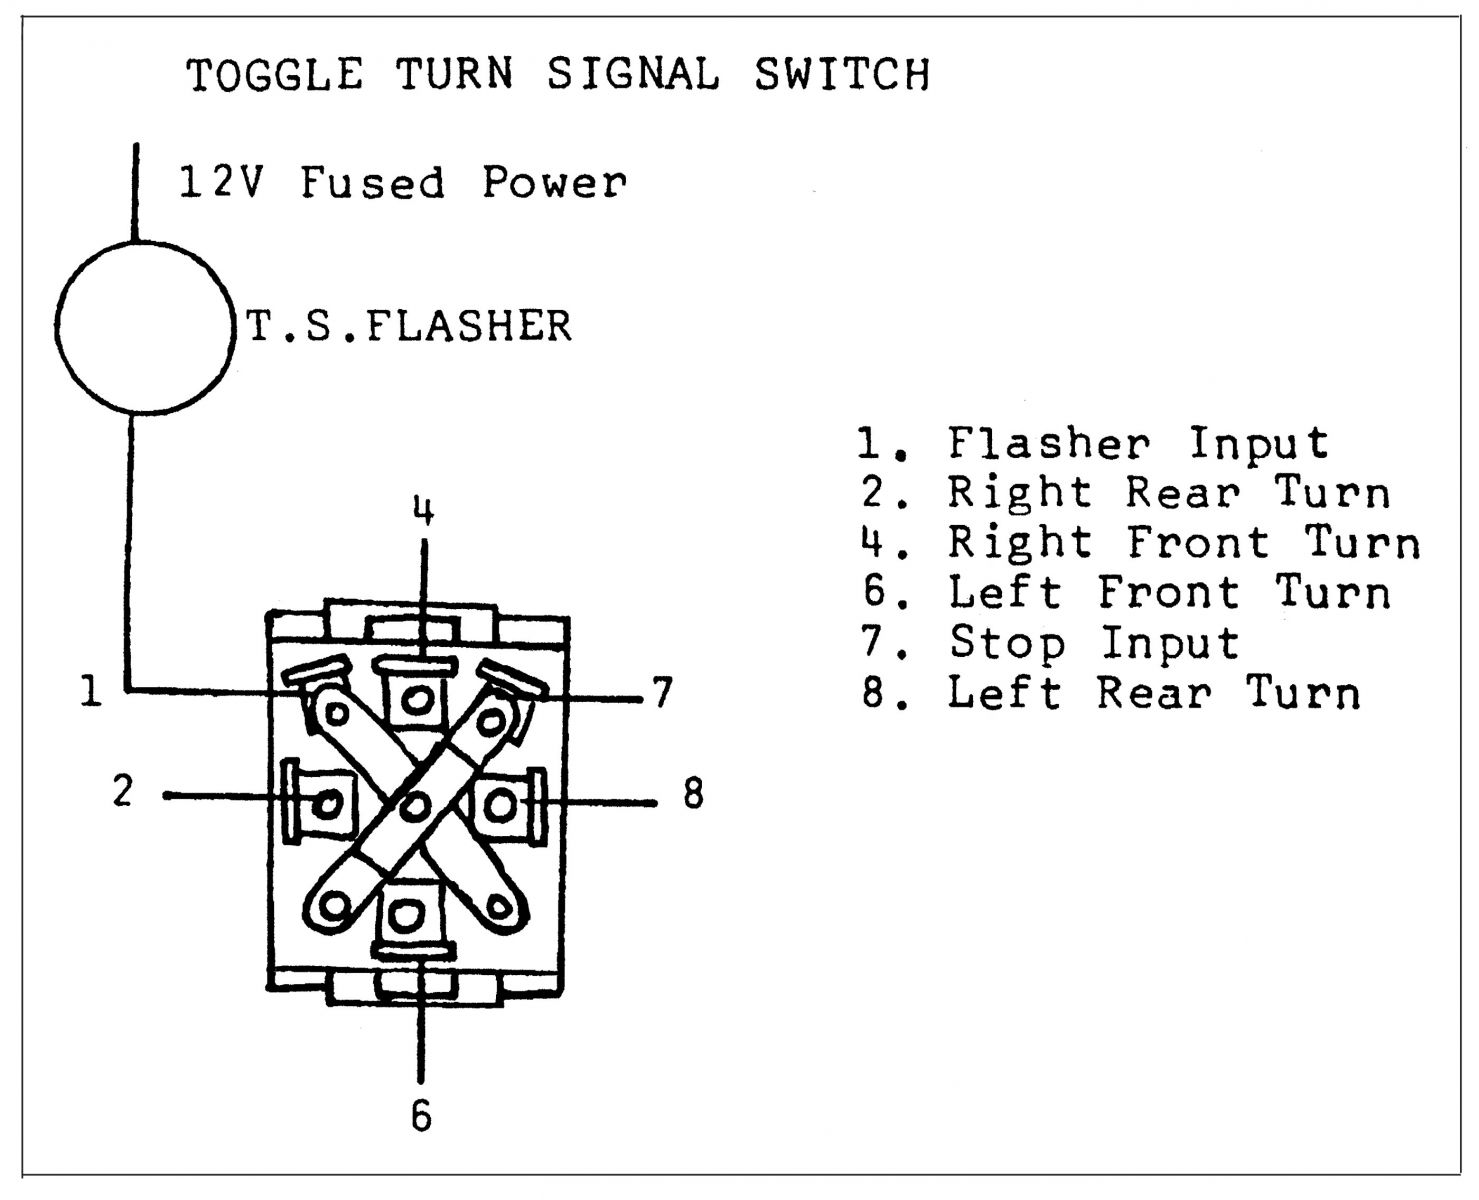 Turn signals 3 turn signals for early hot rods hotrod hotline 9 pin toggle switch wiring diagram at soozxer.org